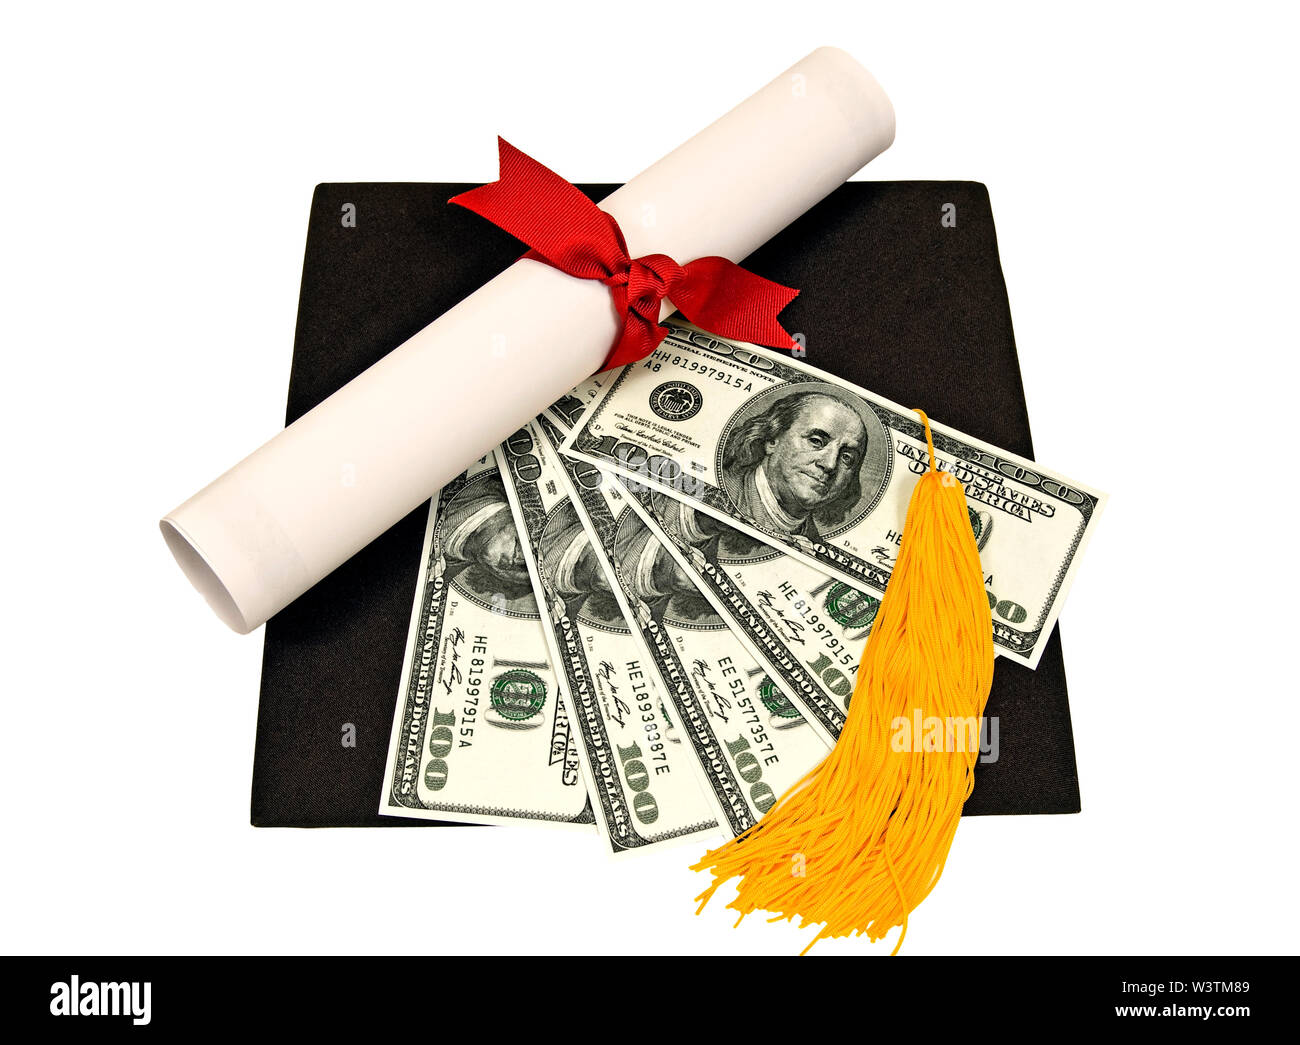 Horizontal shot of a flattened black mortarboard with a diploma tied with a red ribbon, a yellow tassel, and five one hundred dollar bills fanned out - Stock Image